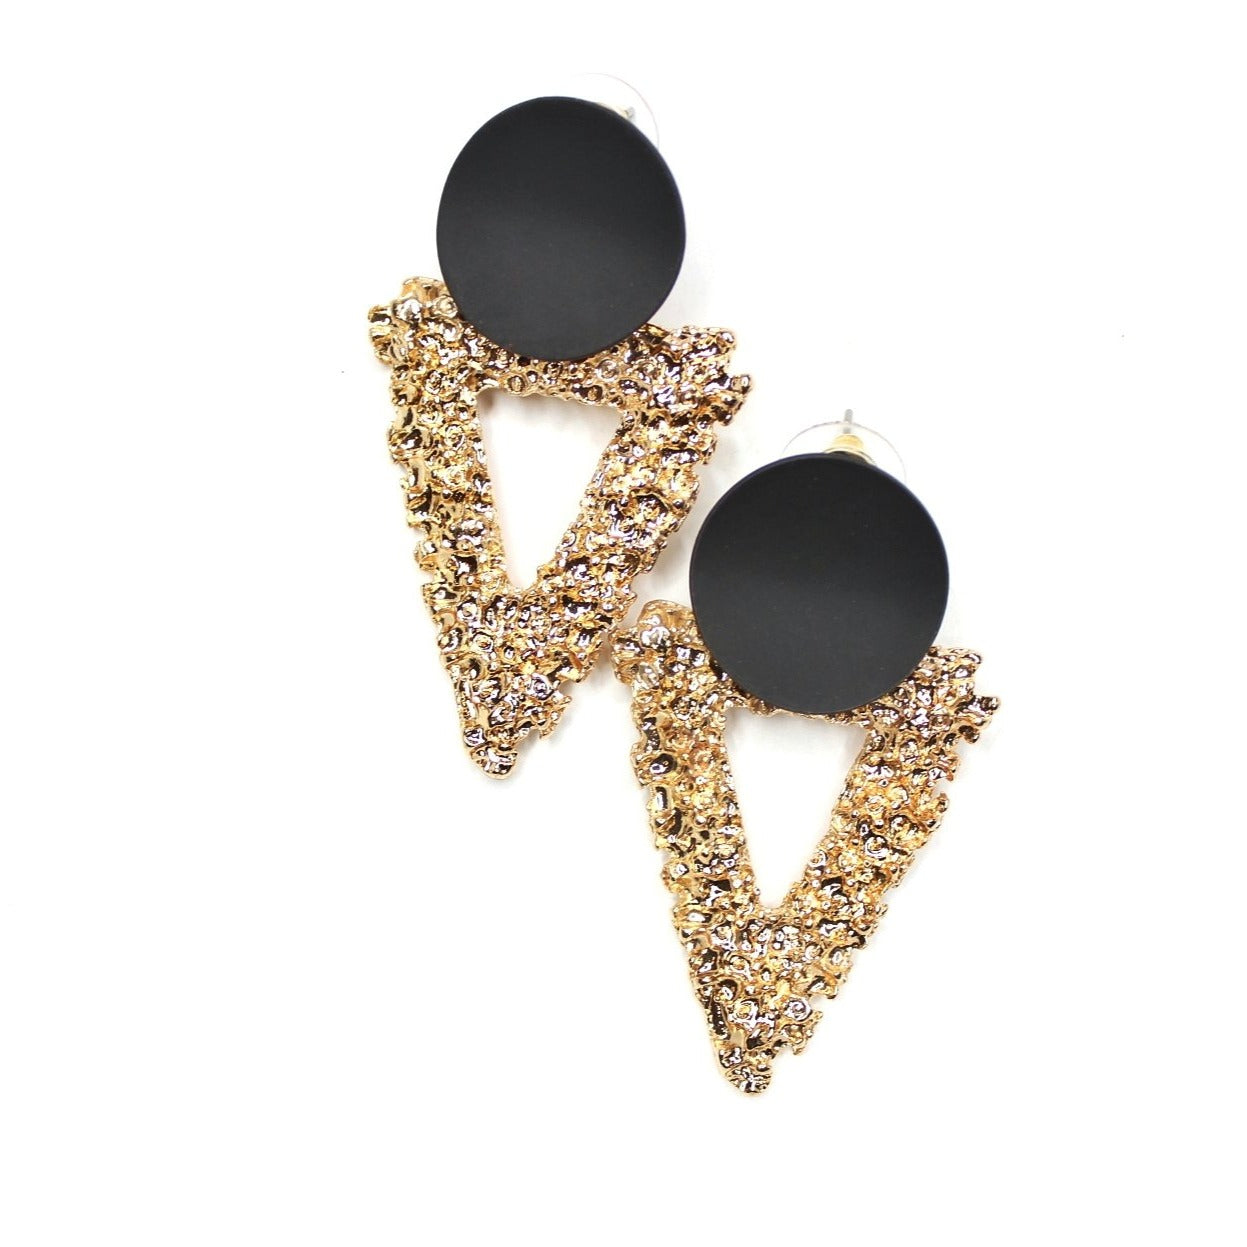 Buy beautiful Black and Gold Textured Triangle Earrings - AWKN Jewelry's